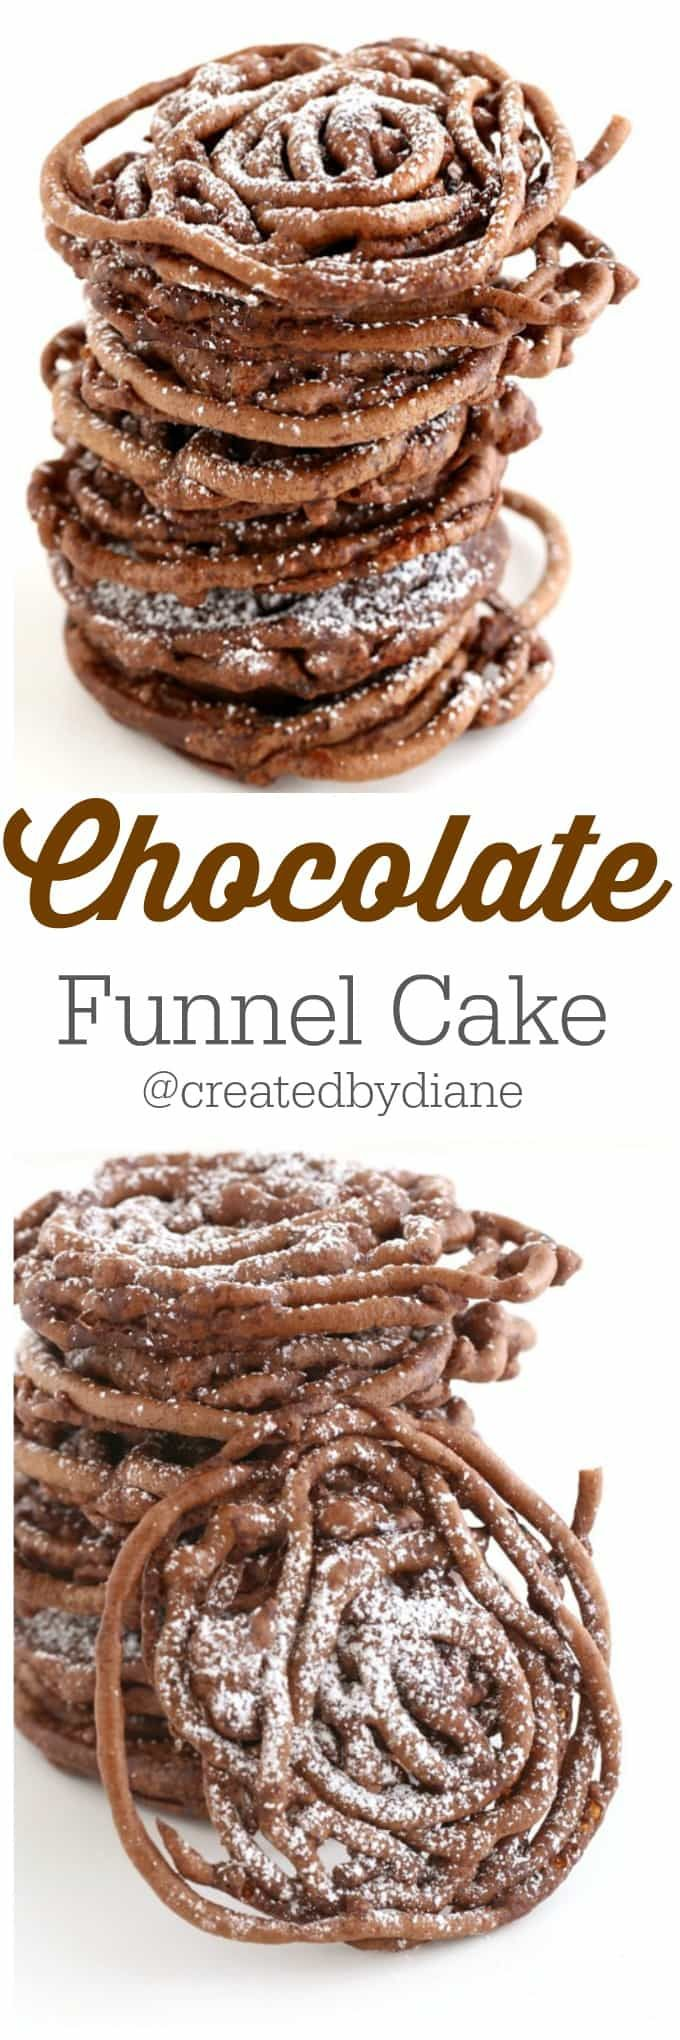 Chocolate funnel cake from createdbydiane Fair food